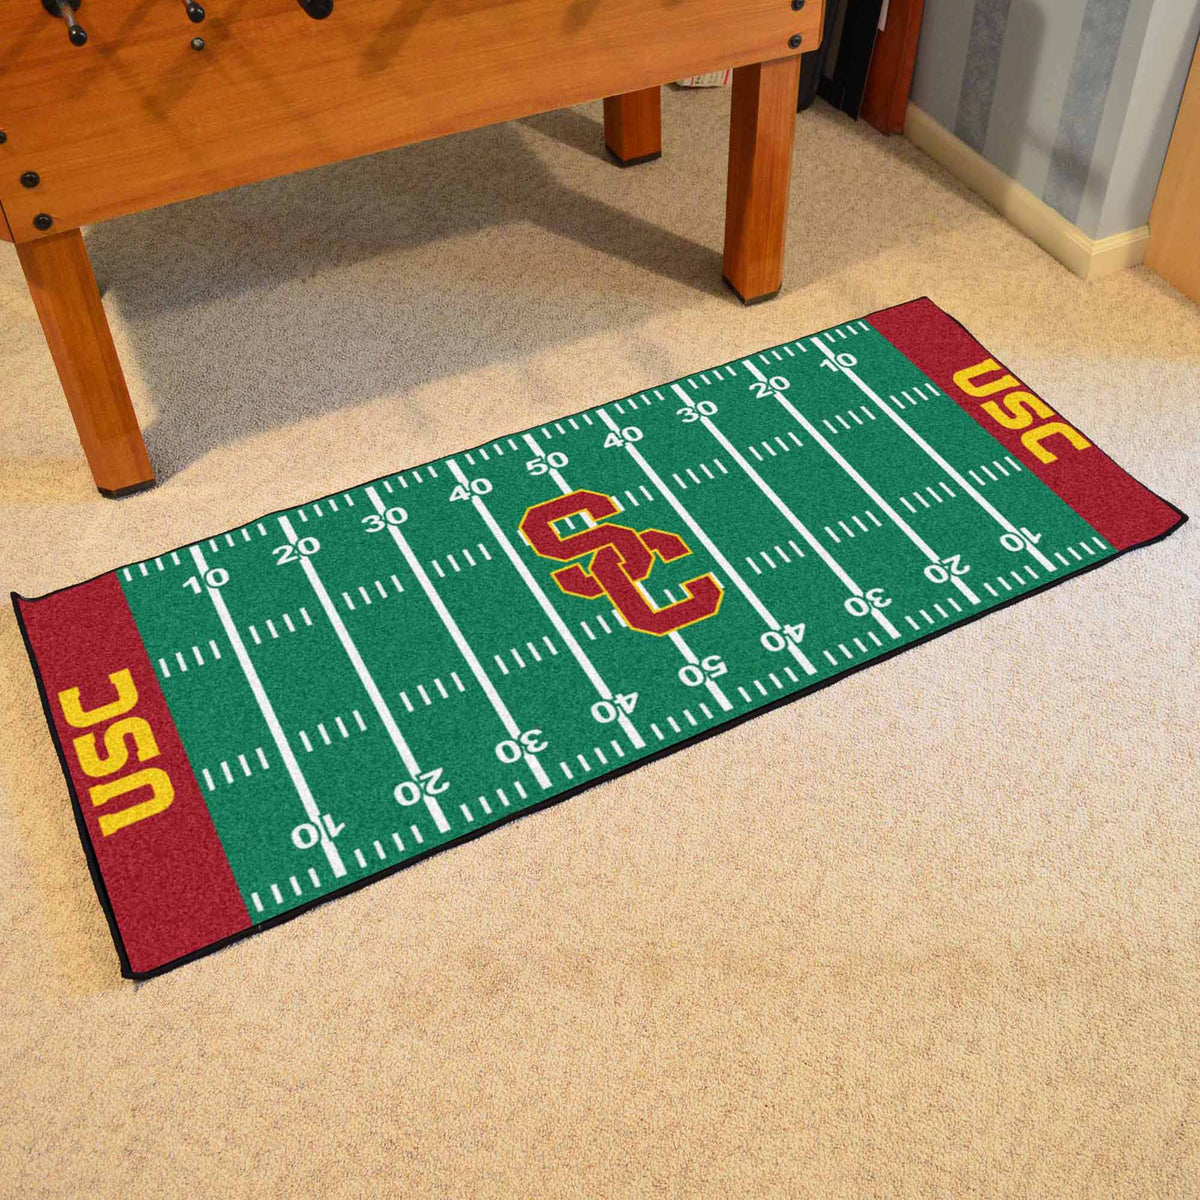 Collegiate - Football Field Runner Collegiate Mats, Rectangular Mats, Football Field Runner, Collegiate, Home Fan Mats Southern California